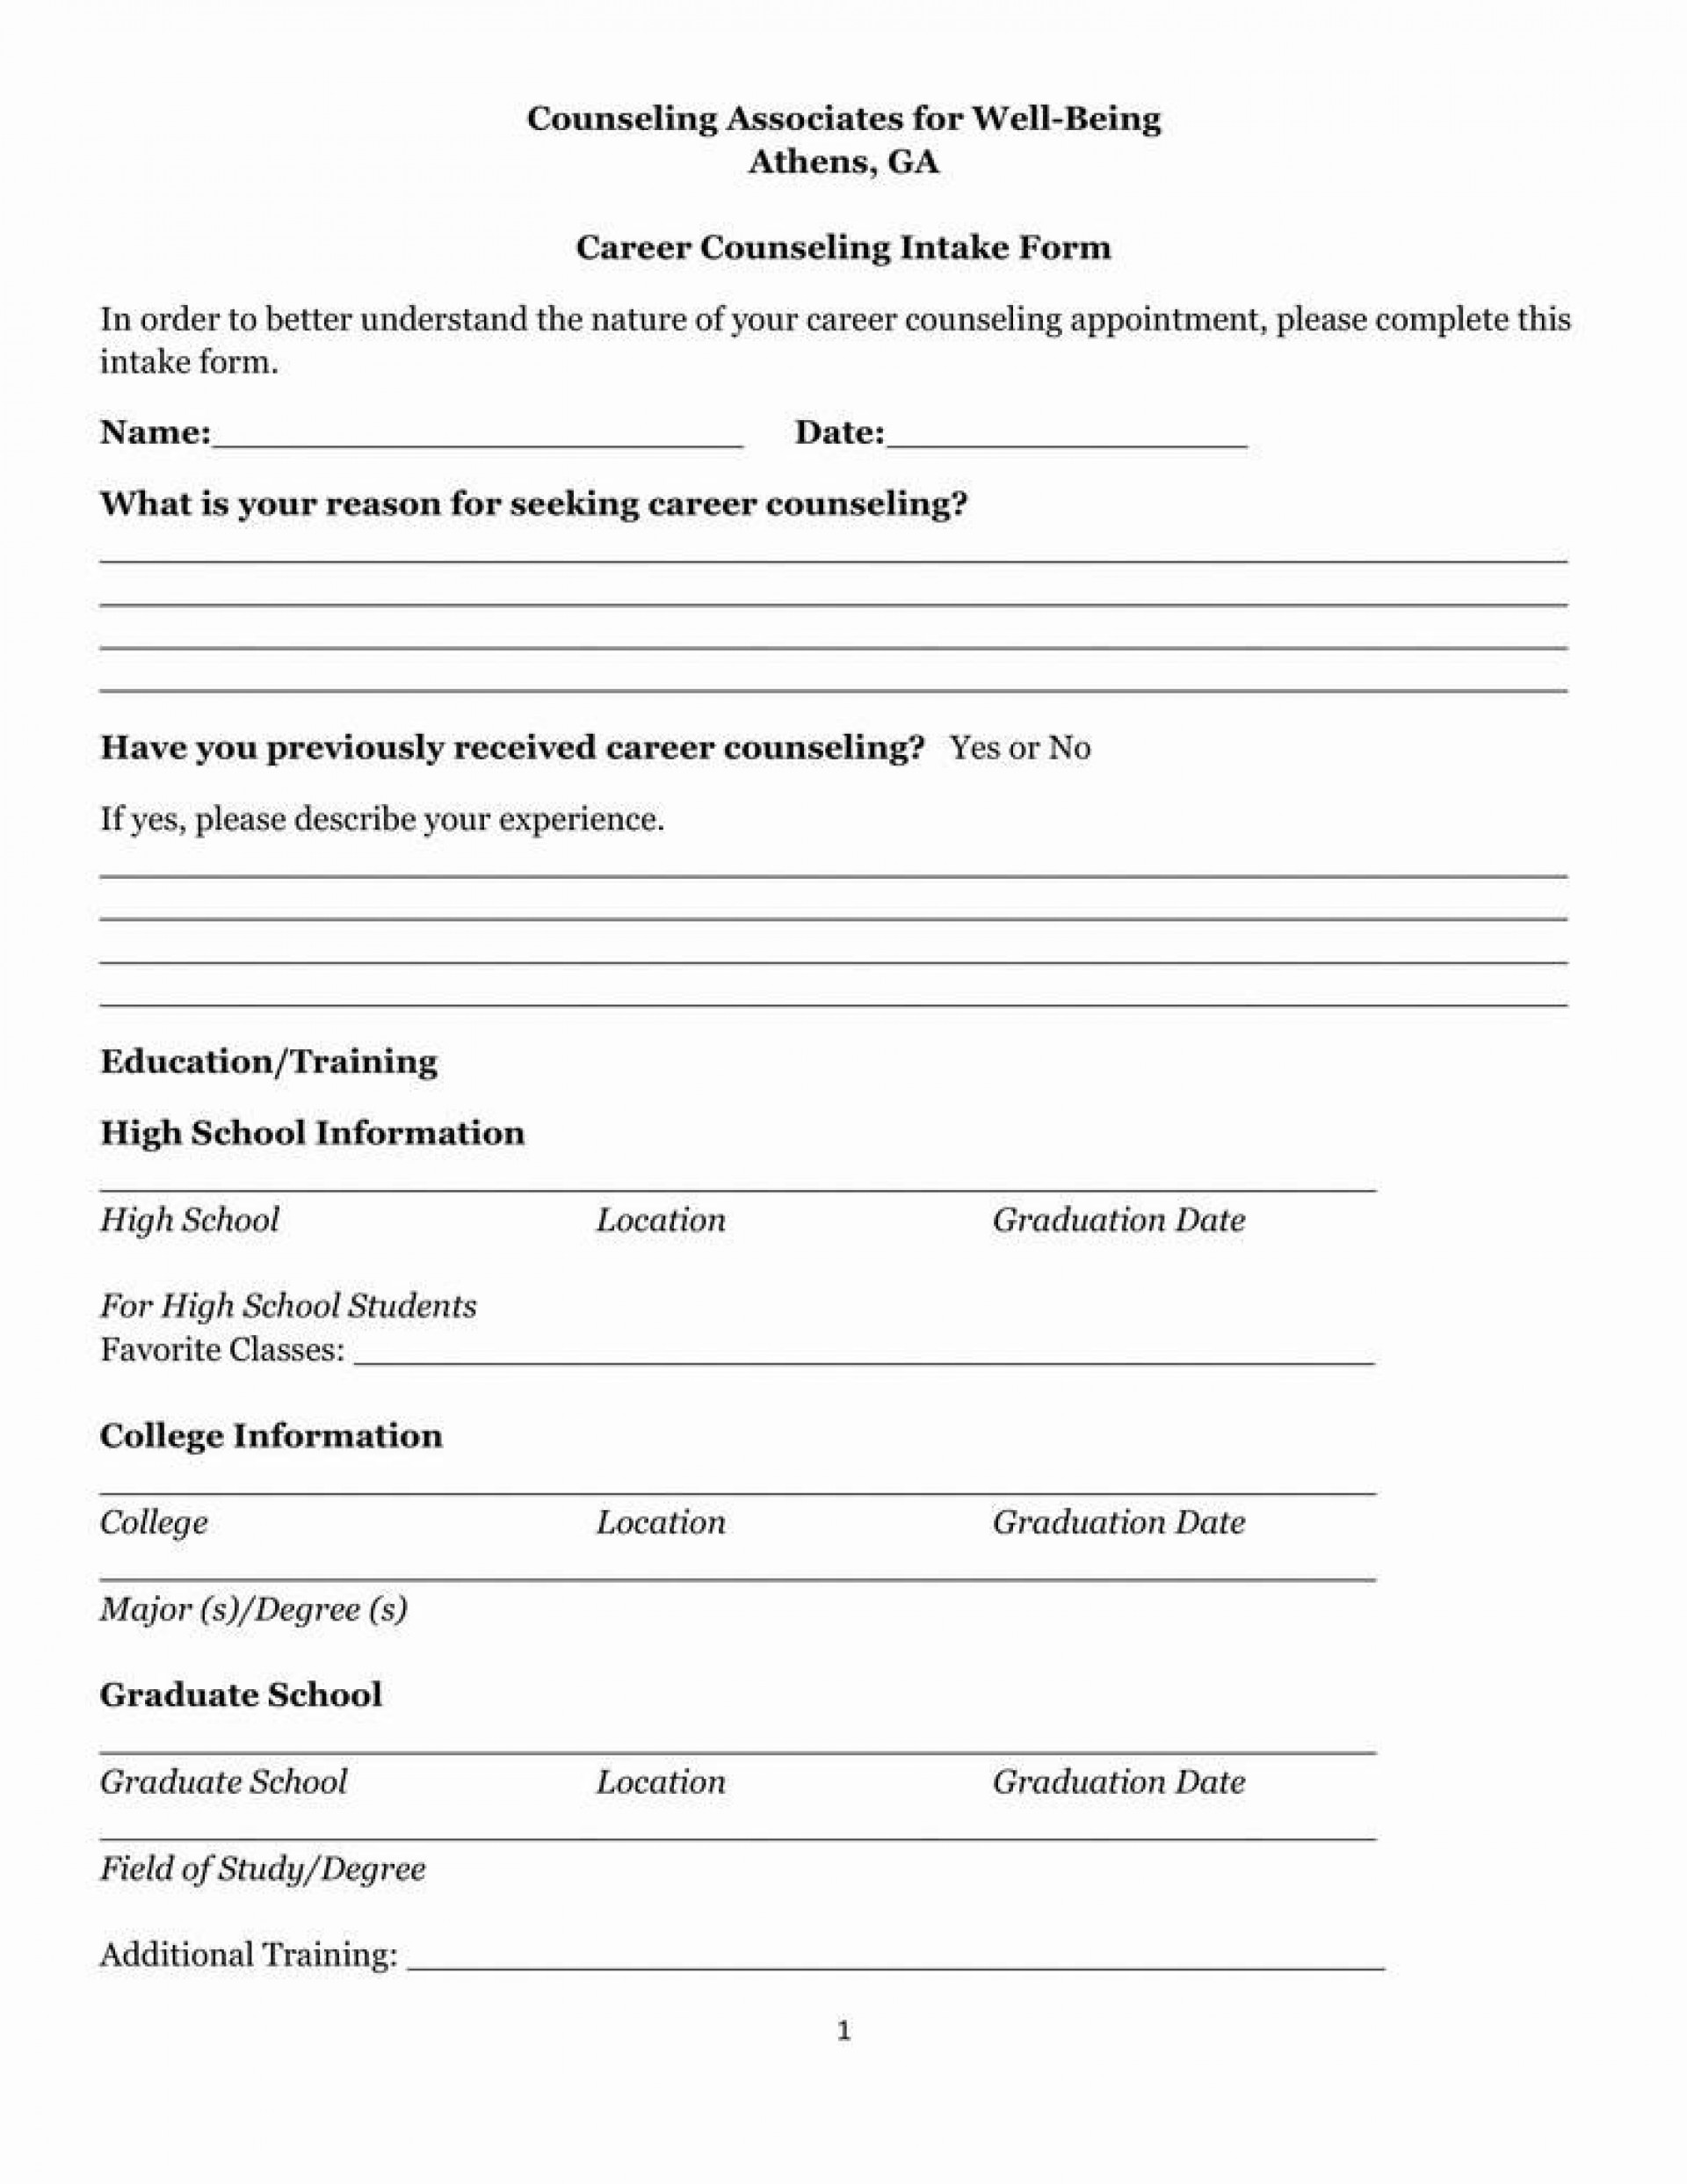 008 Rare Counseling Intake Form Template High Resolution  Templates Therapy Massage Free1920